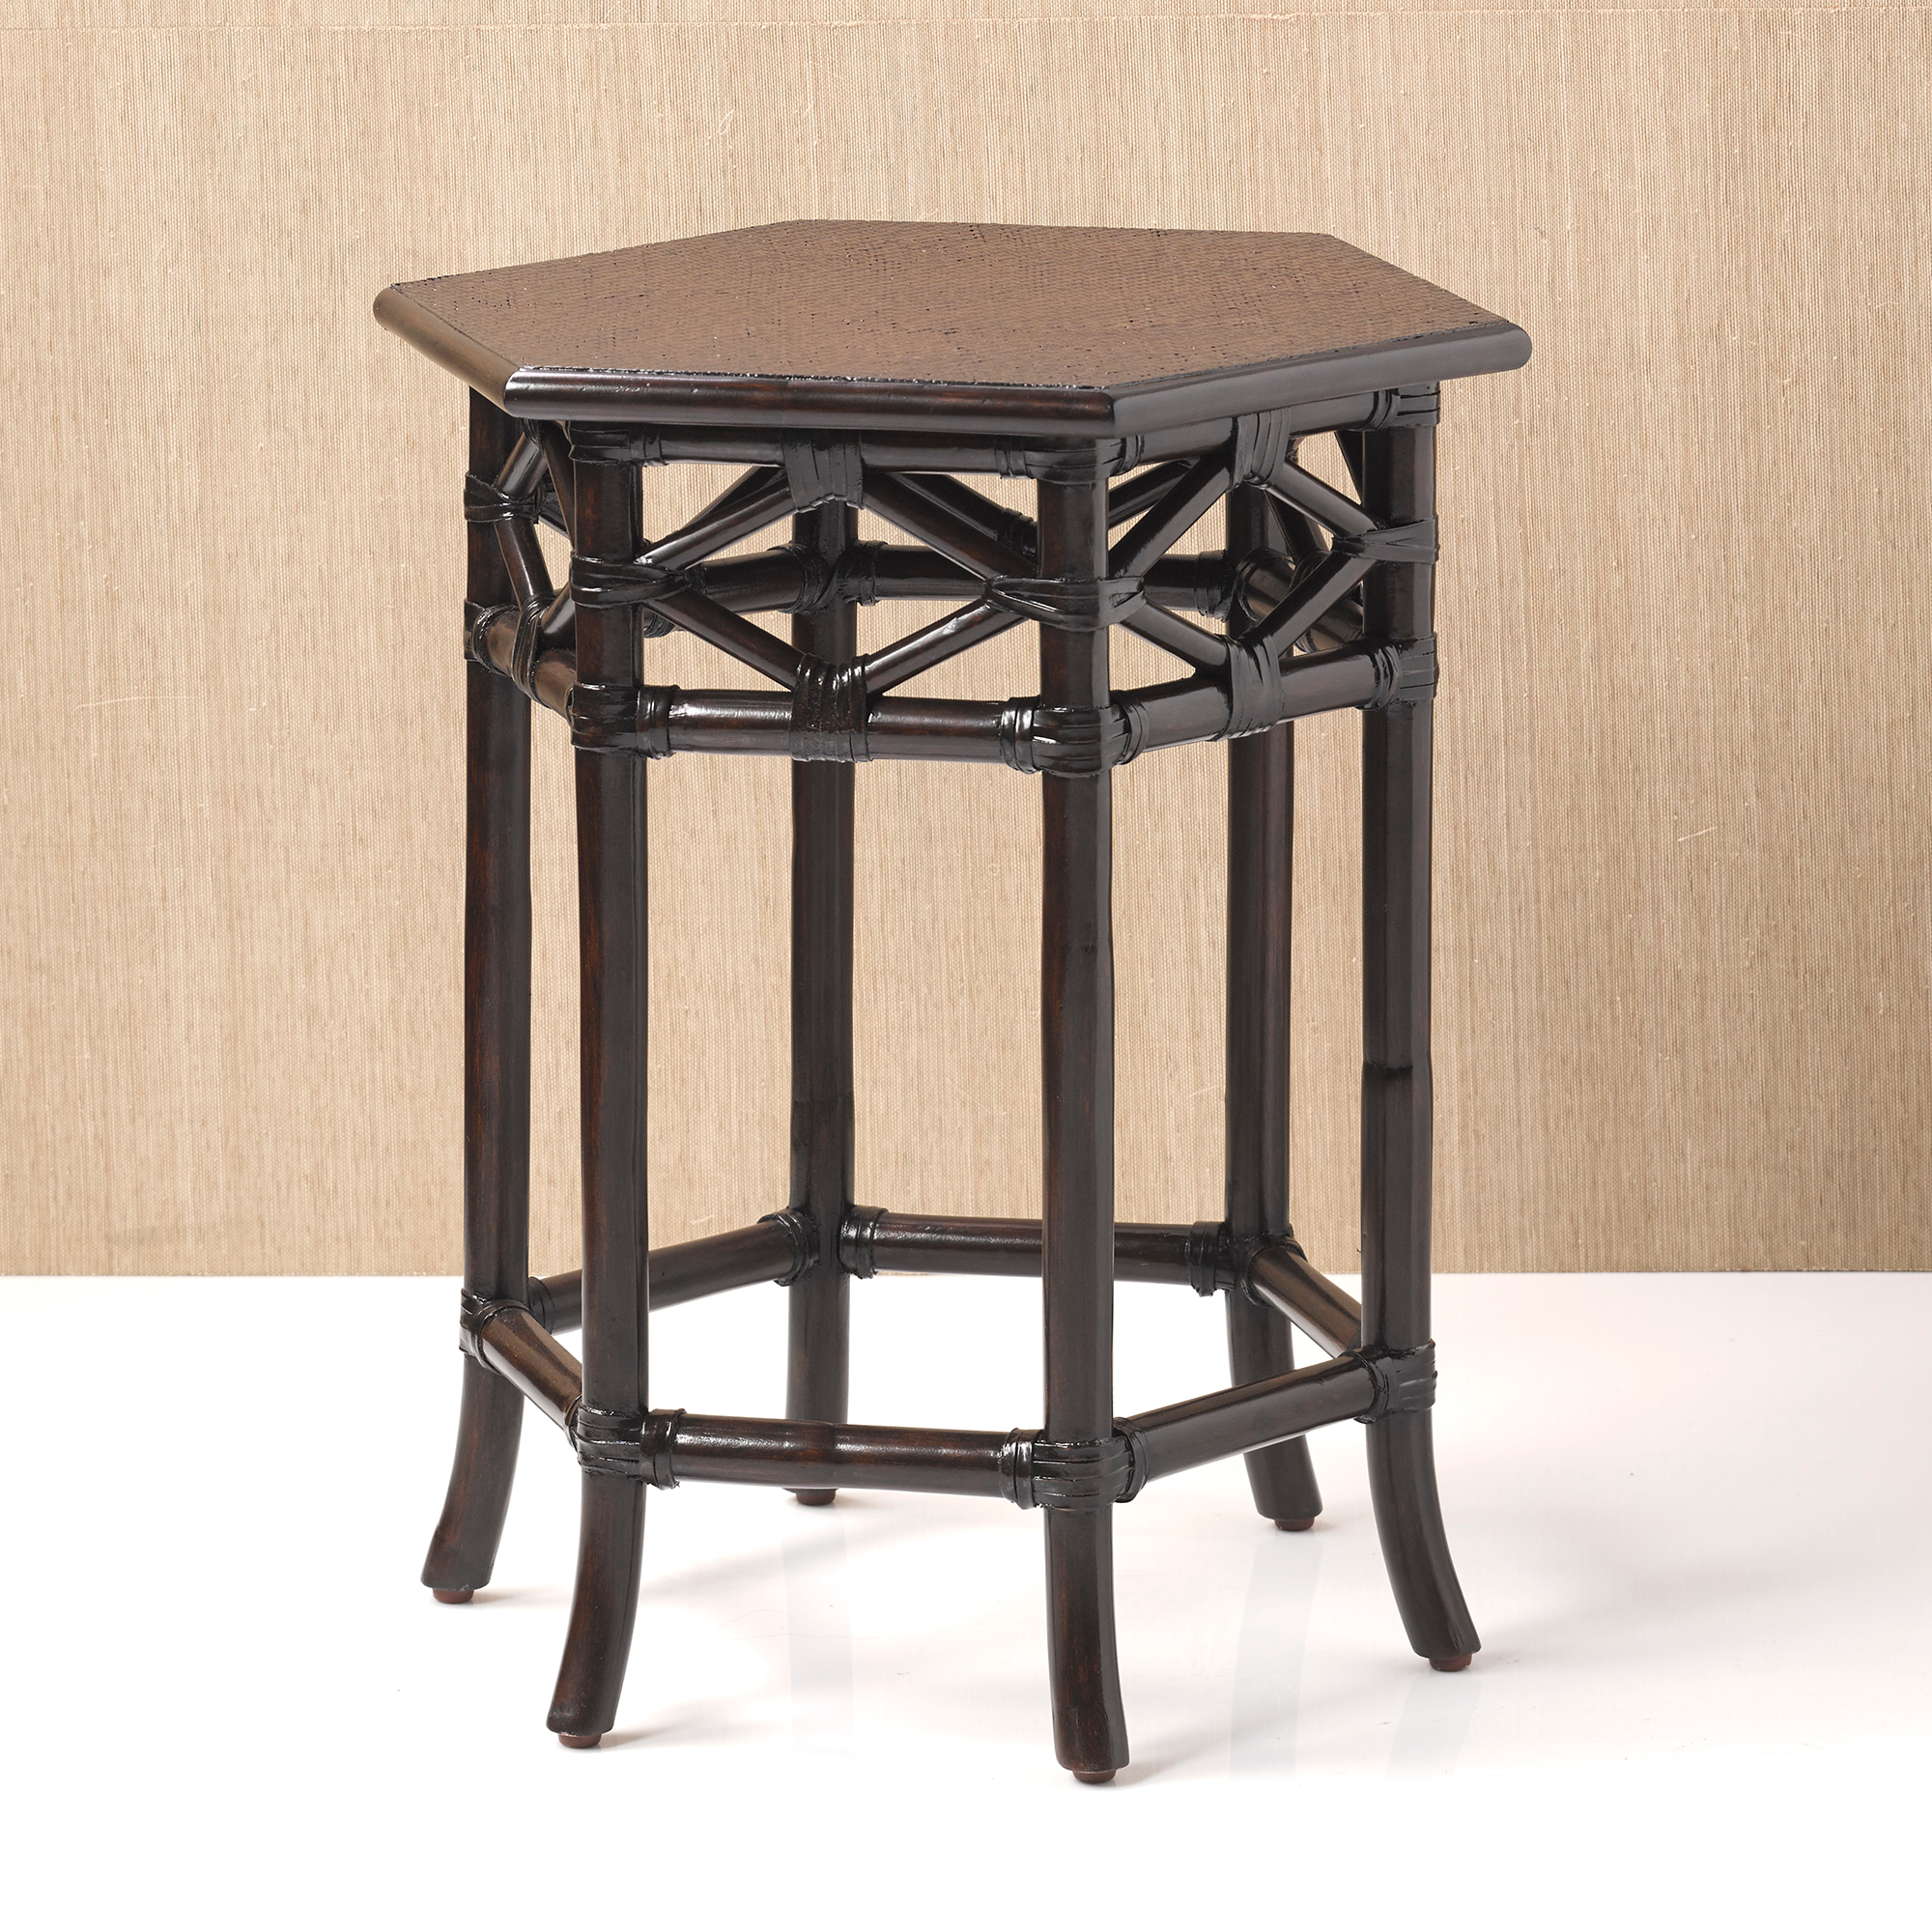 Balboa Hexagon Rattan Table